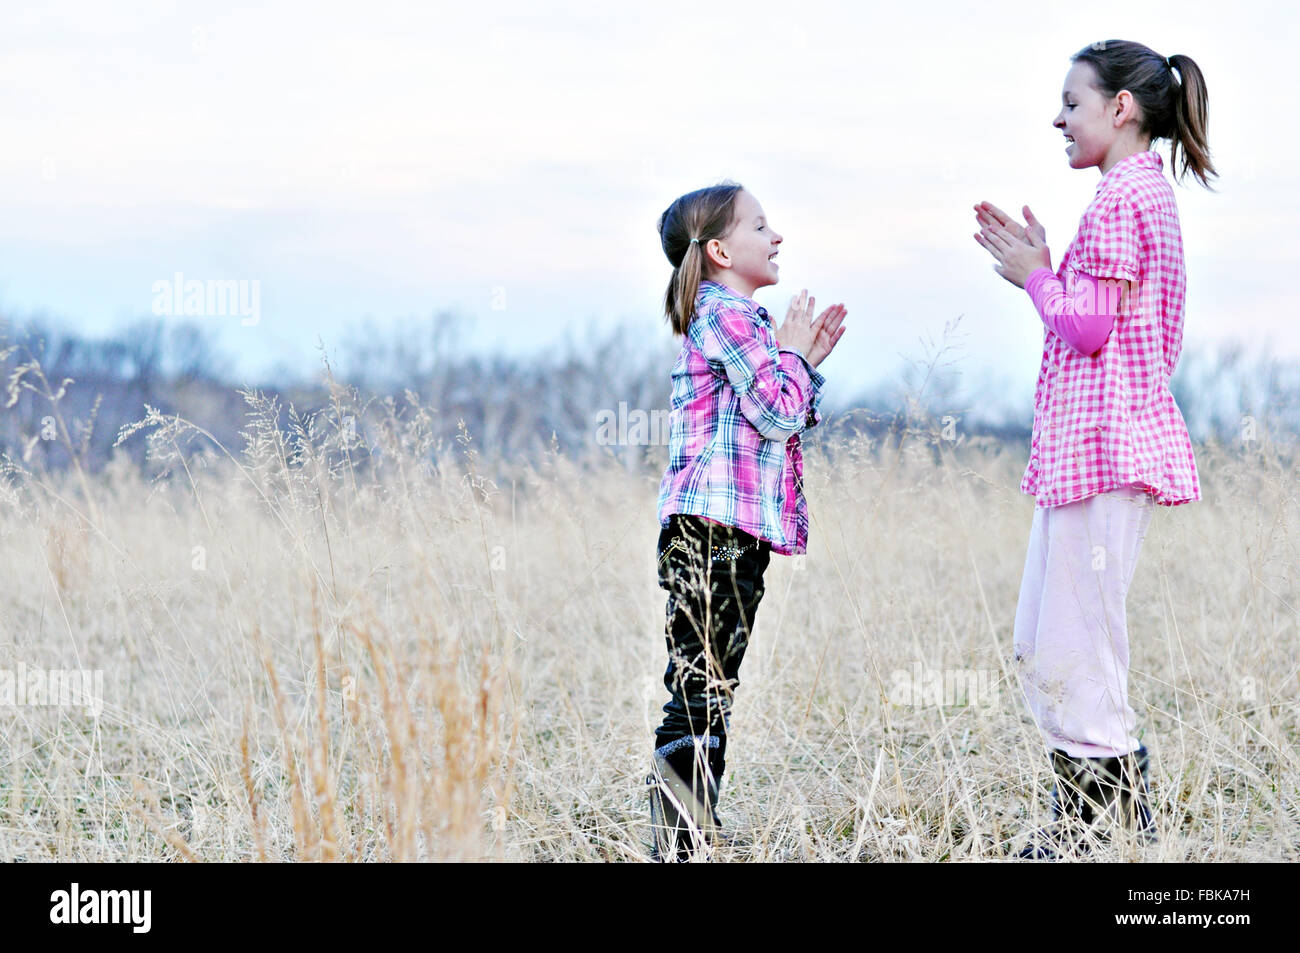 girls playing clapping hand games in field - Stock Image